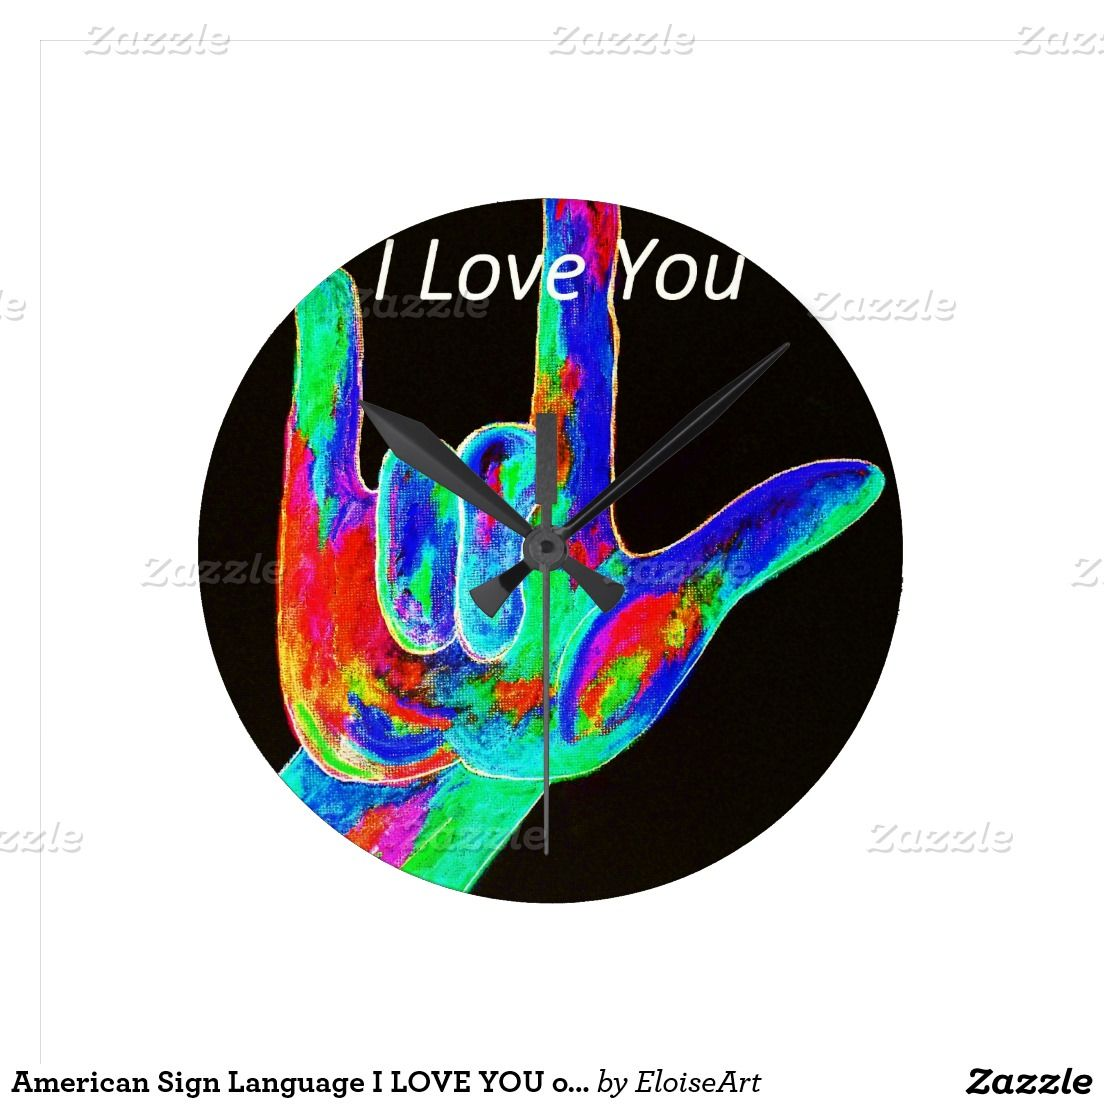 American Sign Language I LOVE YOU on Black Round Wall Clock